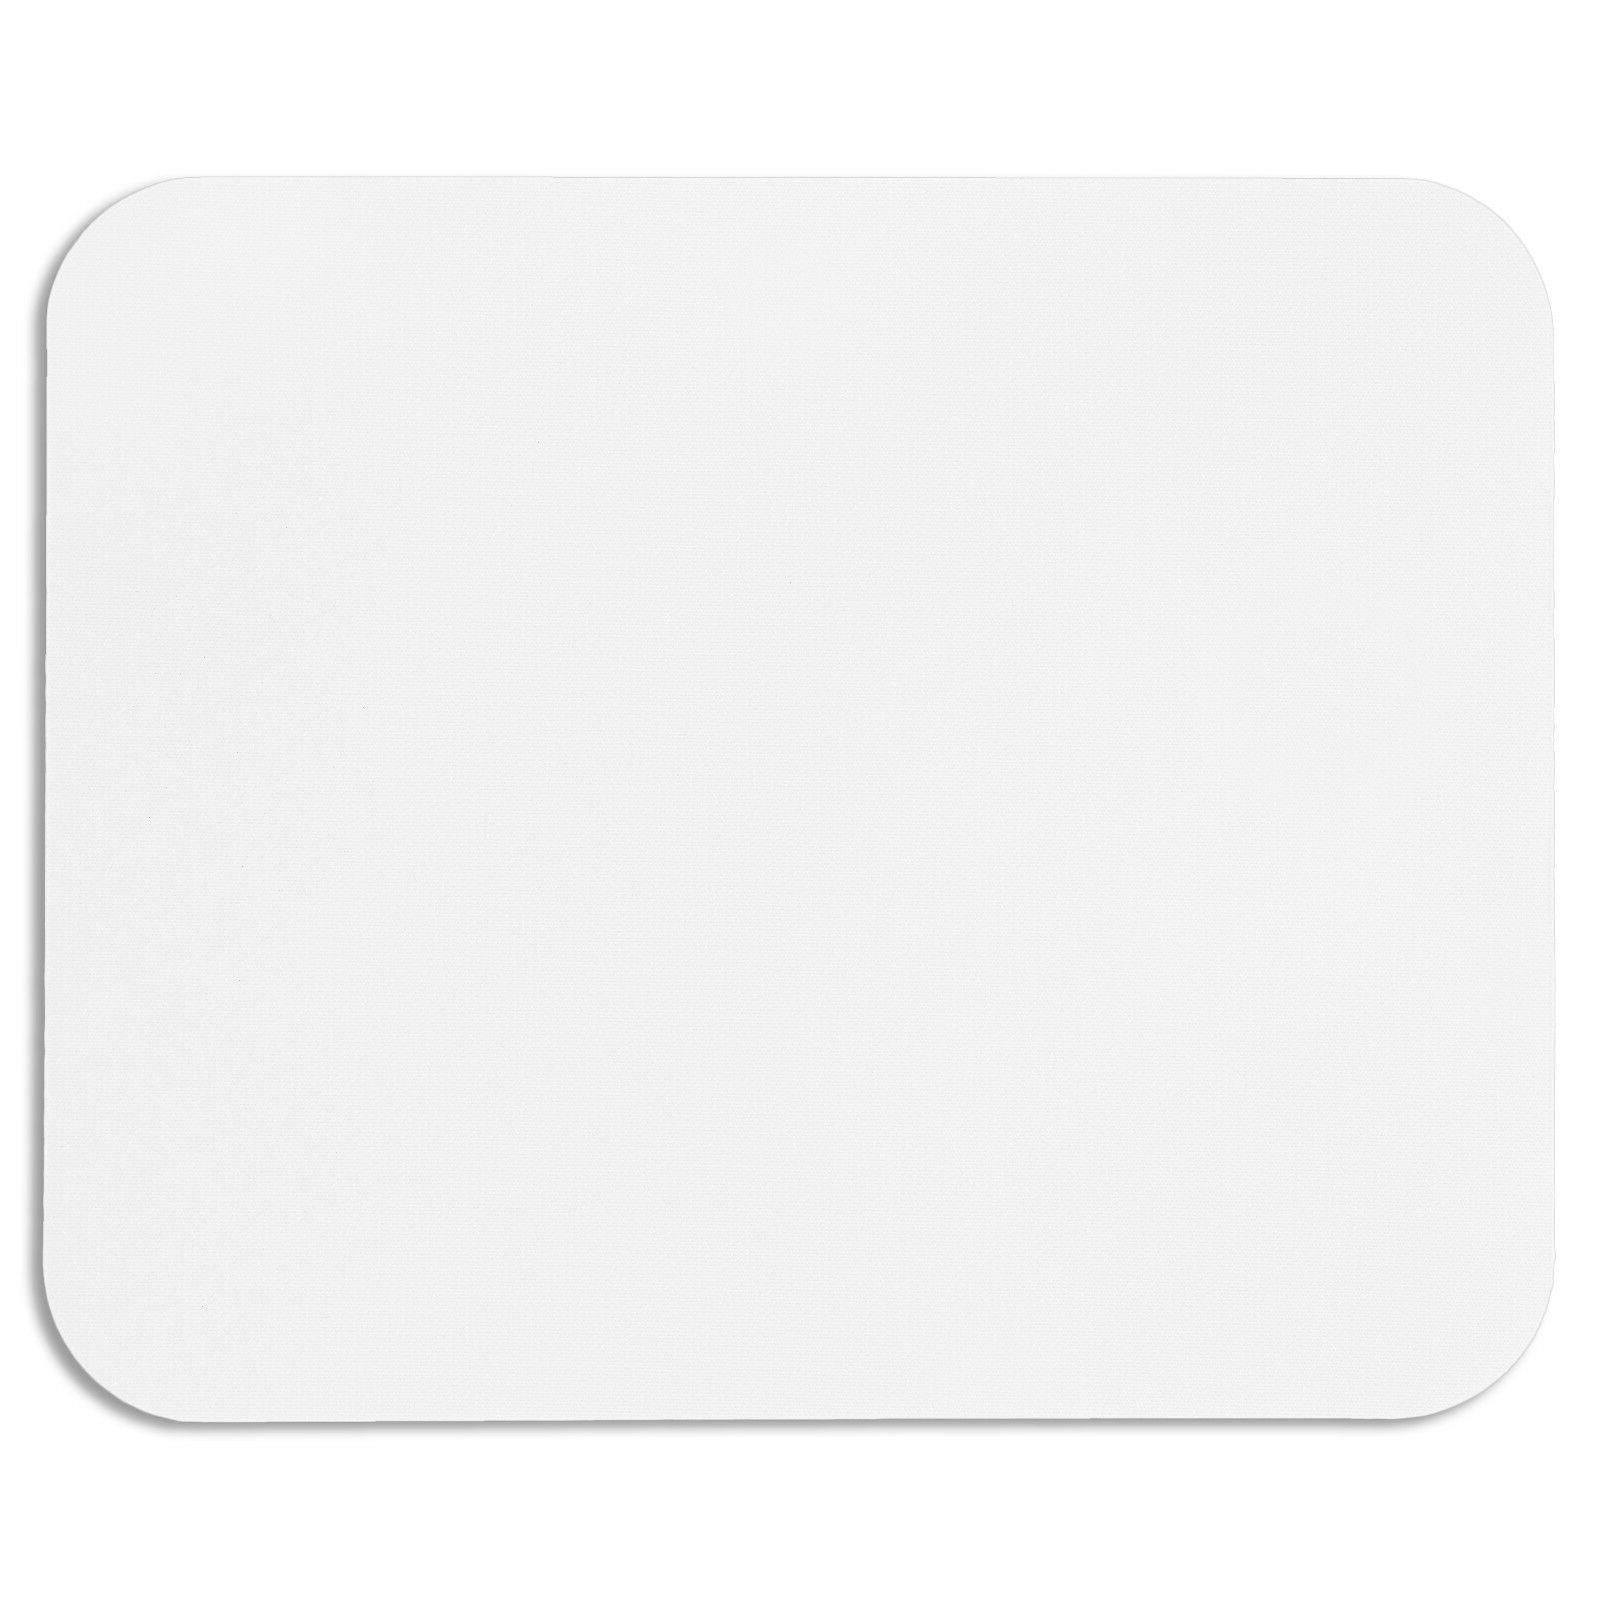 standard mouse pad white